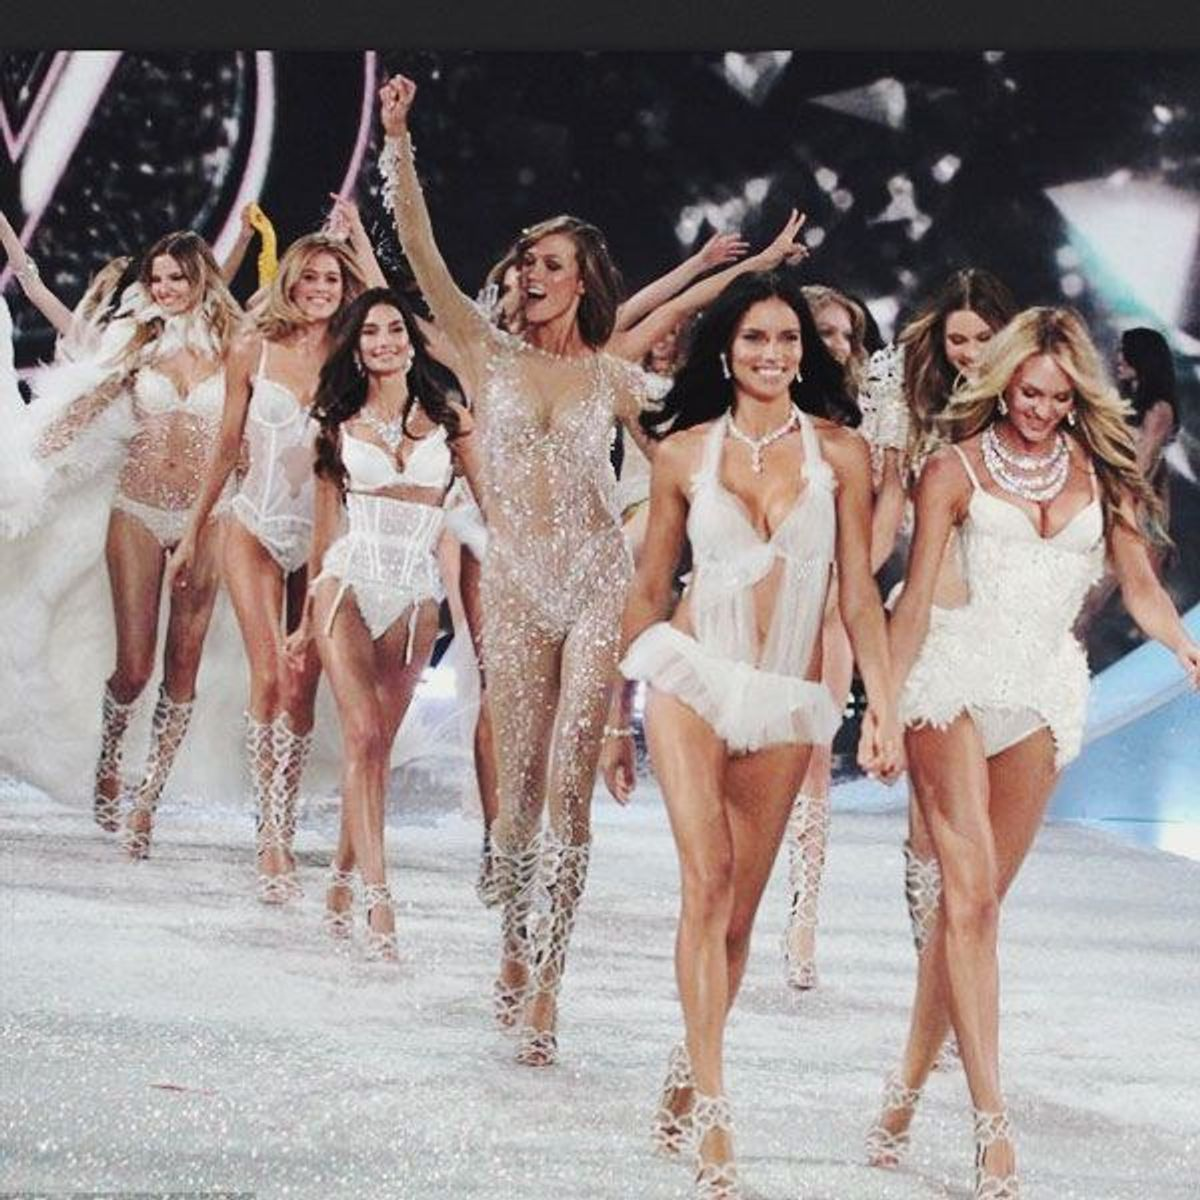 5 Reasons Not To Body Shame After The Victoria Secret (VS) Fashion Show